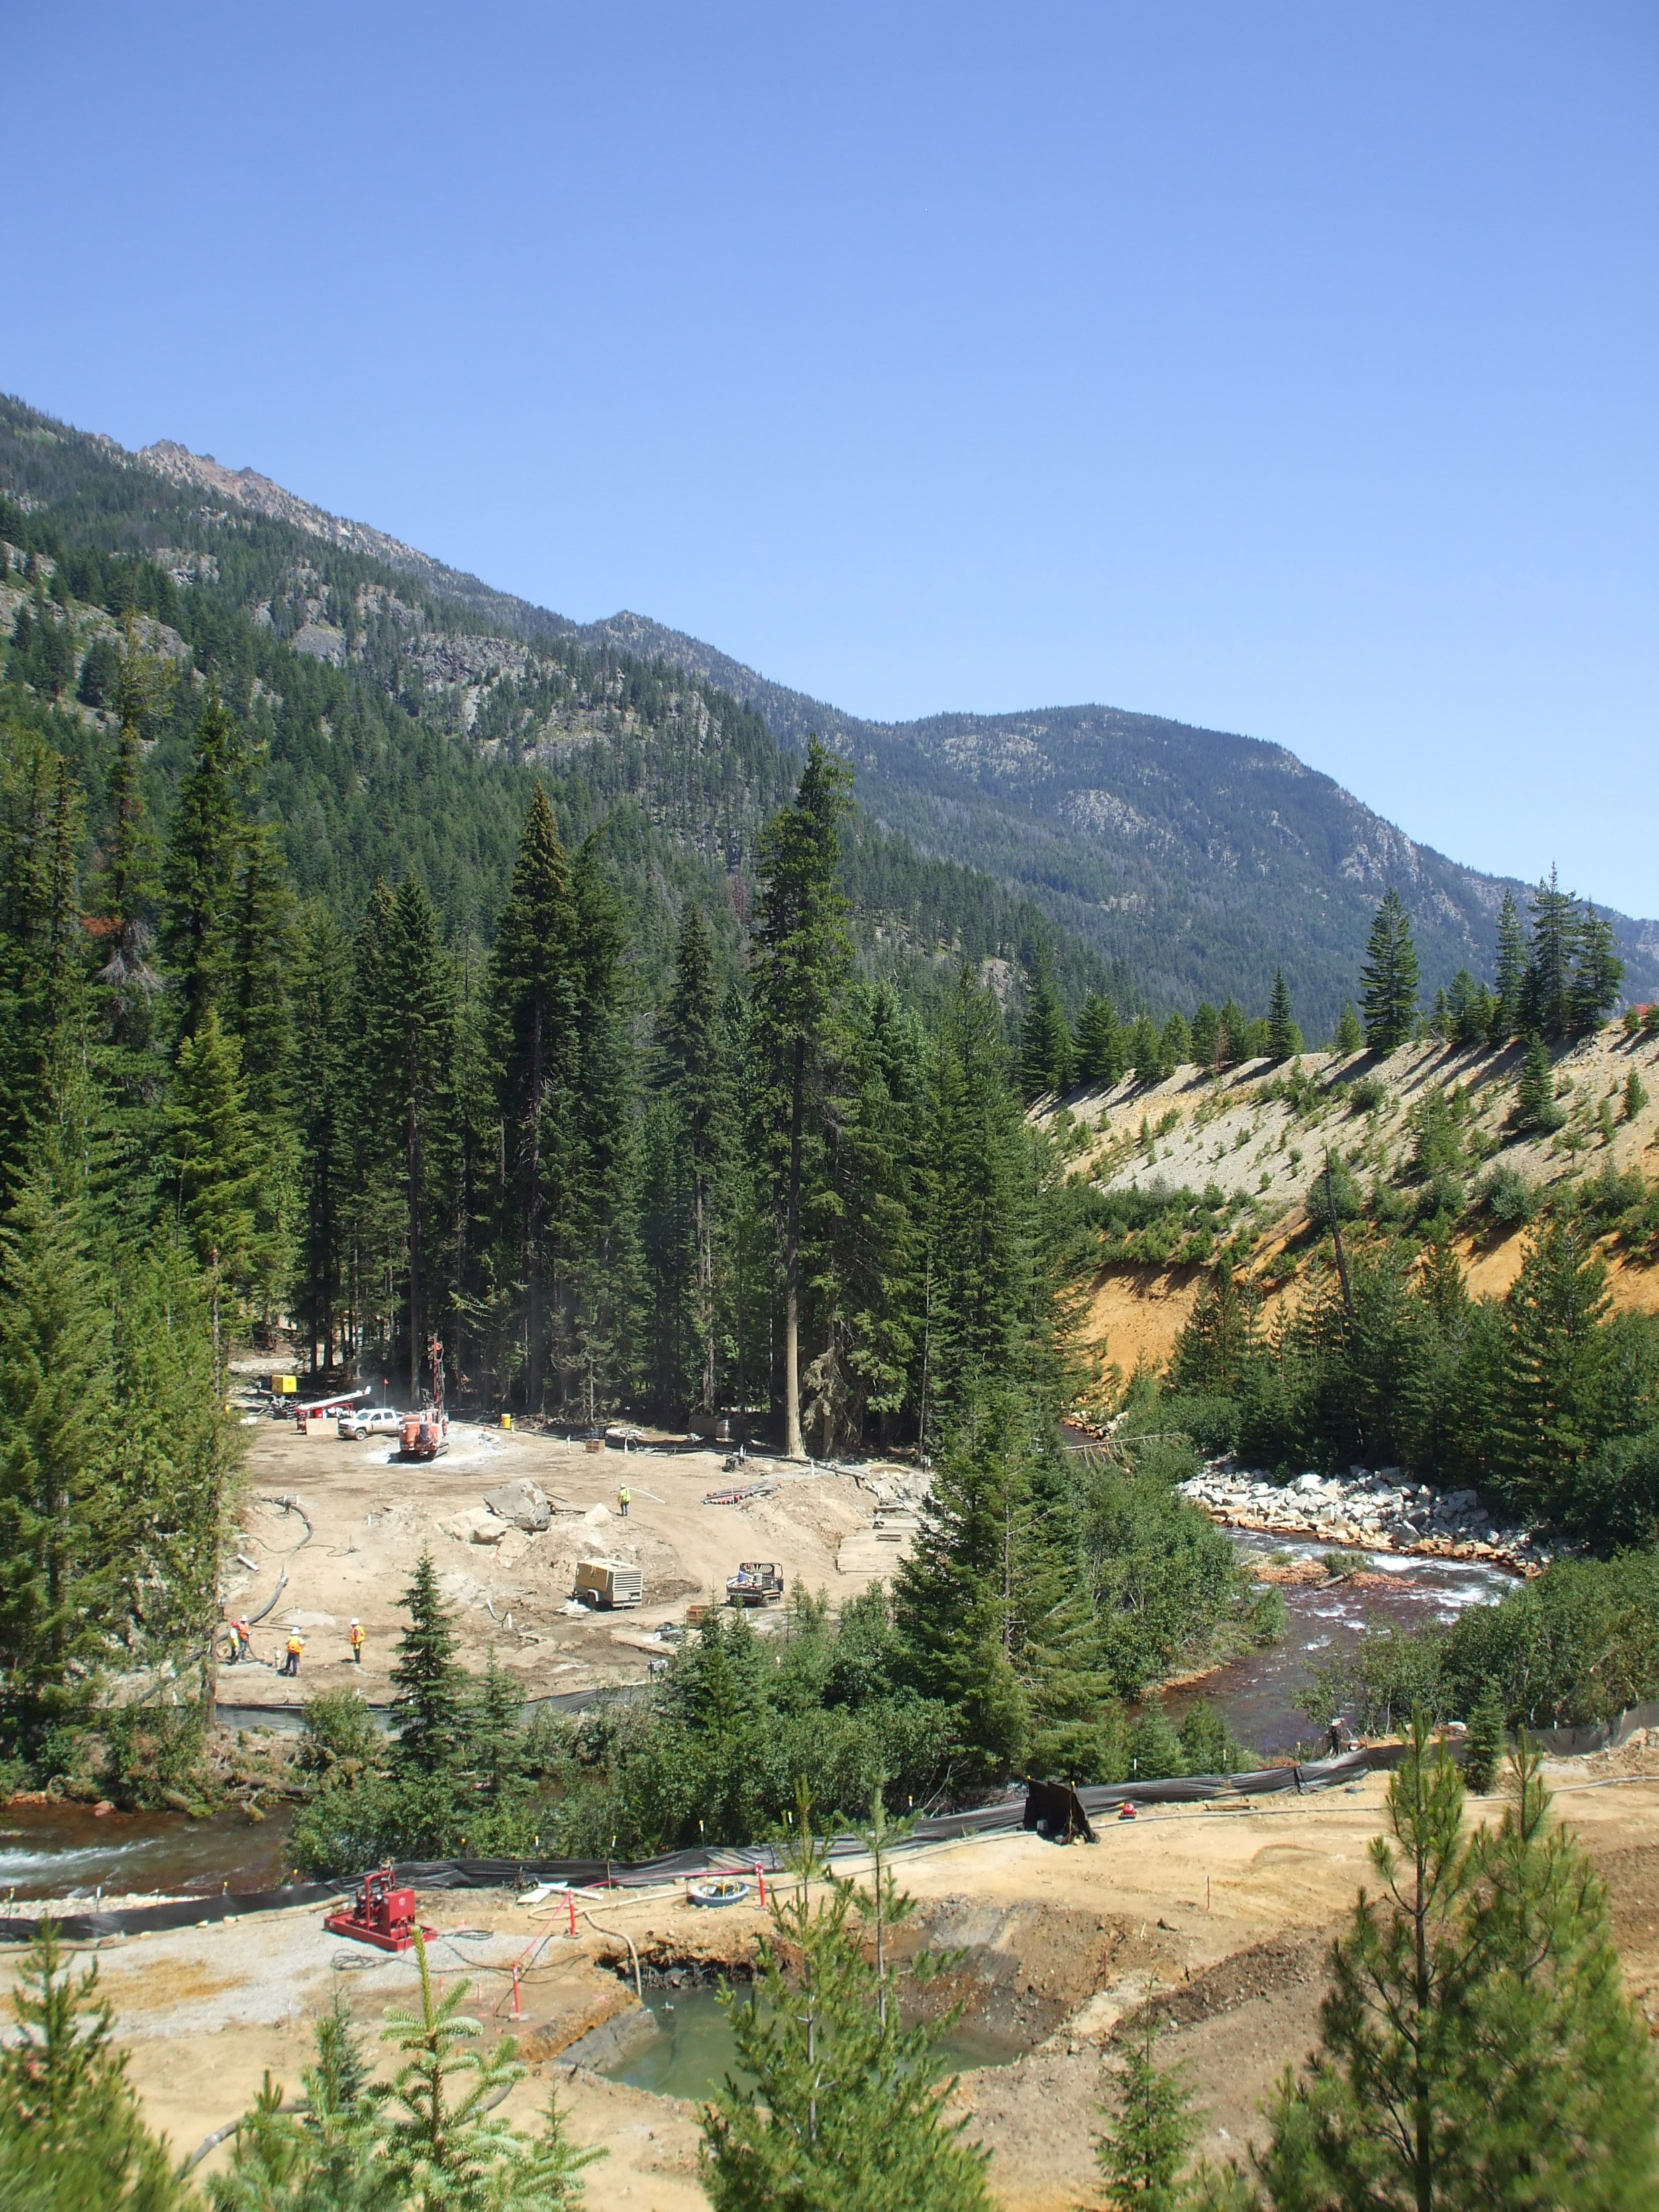 Okanogan-Wenatchee National Forest - Projects